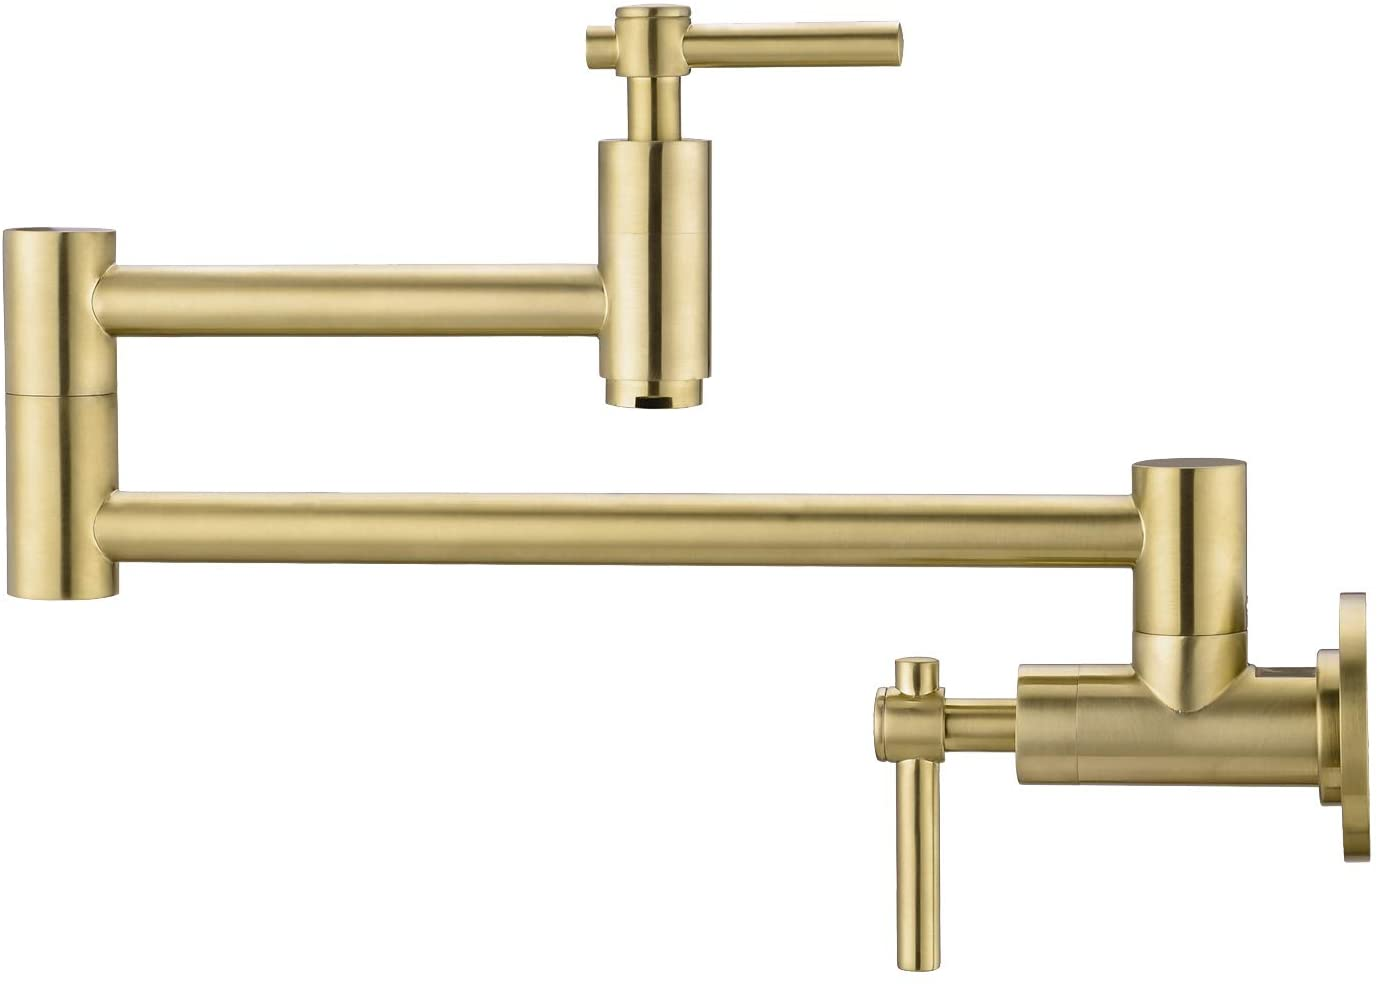 BZOOSIU Pot Filler Faucet Wall Mount, Double Joint Swing Arms Solid Brass Folding Faucet, Single Hole Two Handles Wall Mount Kitchen Faucet, Brushed Gold